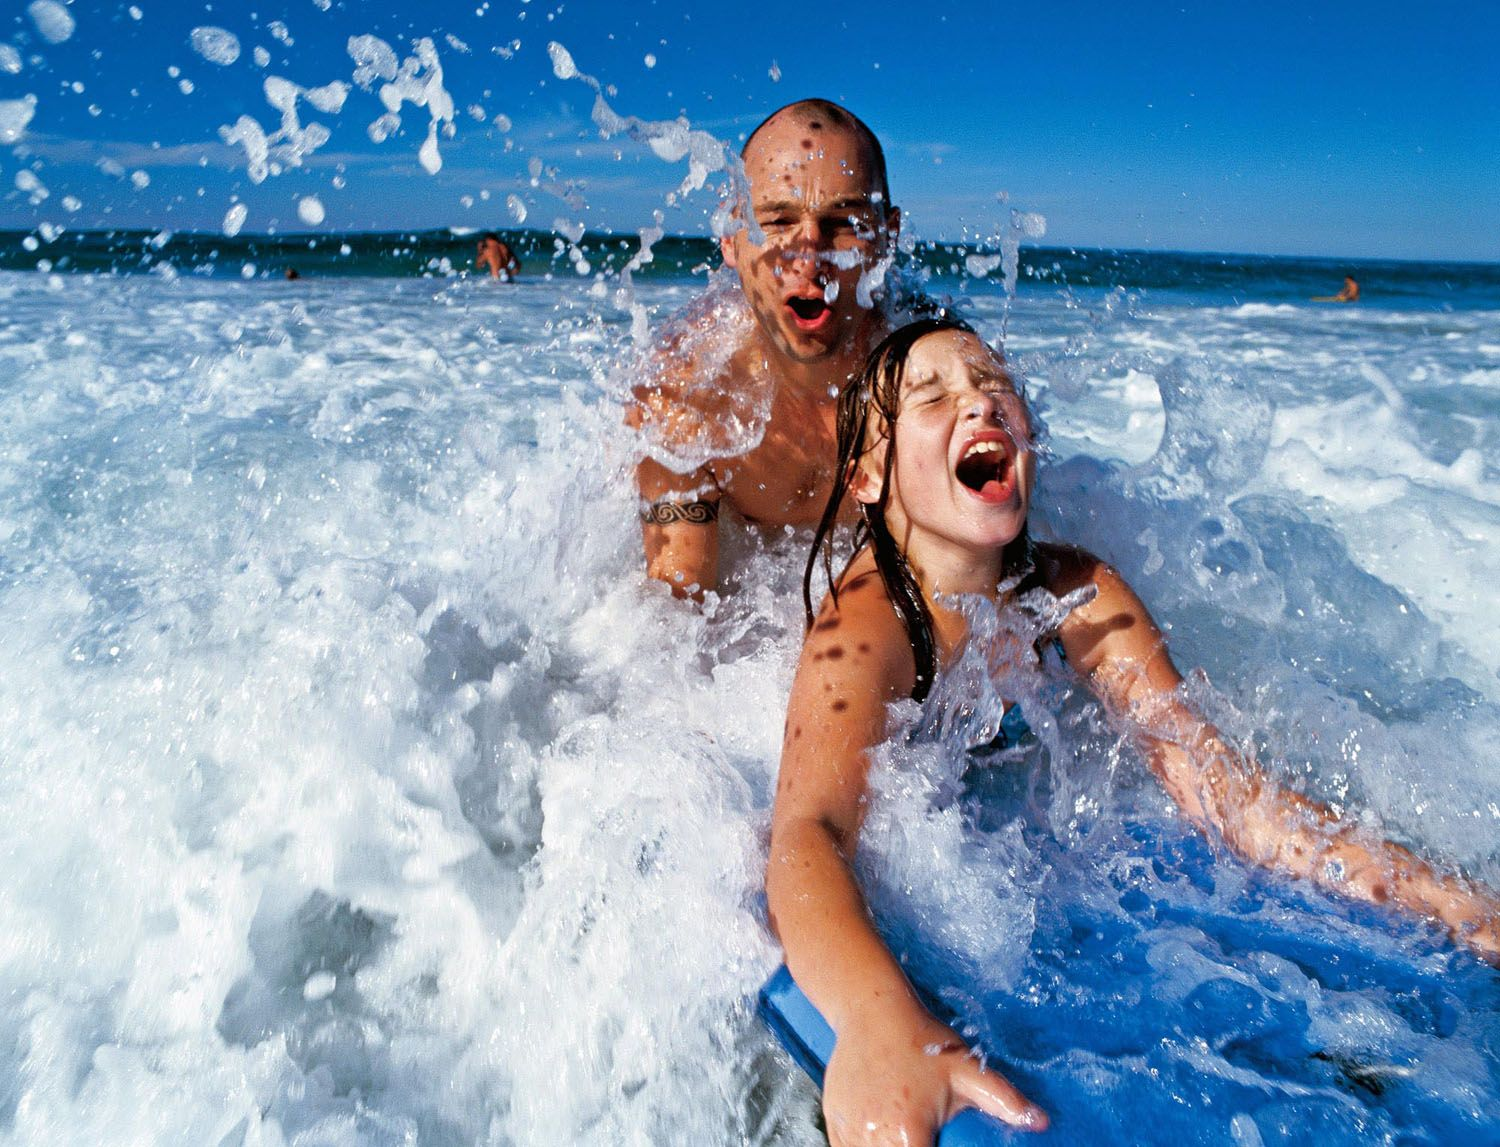 Father and daughter on a surfboard.